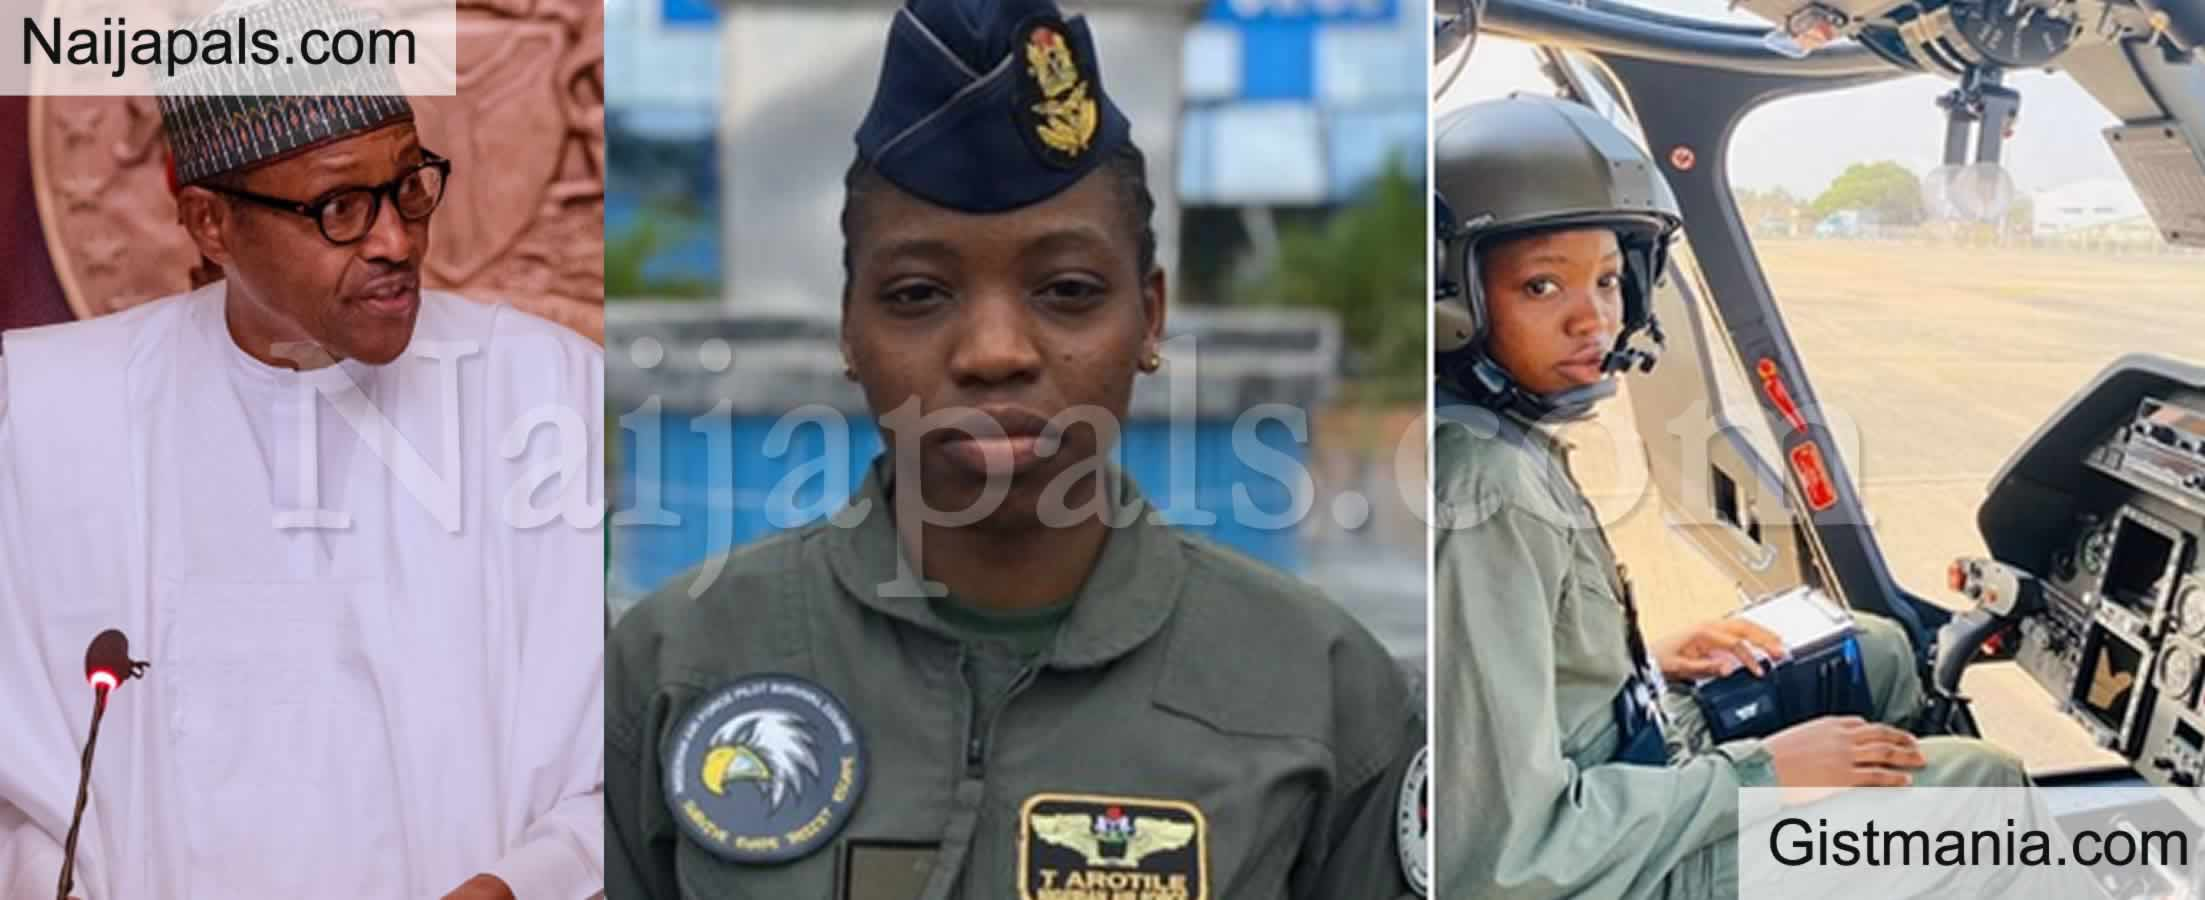 "<img alt='.' class='lazyload' data-src='https://img.gistmania.com/emot/cry.gif' /> ""We'll Miss You"" - <b>President Buhari, Tinubu, Saraki, Others Mourn Nigeria's First-ever Female Combat Helicopter Pilot, Tolulupe Arotile</b>"